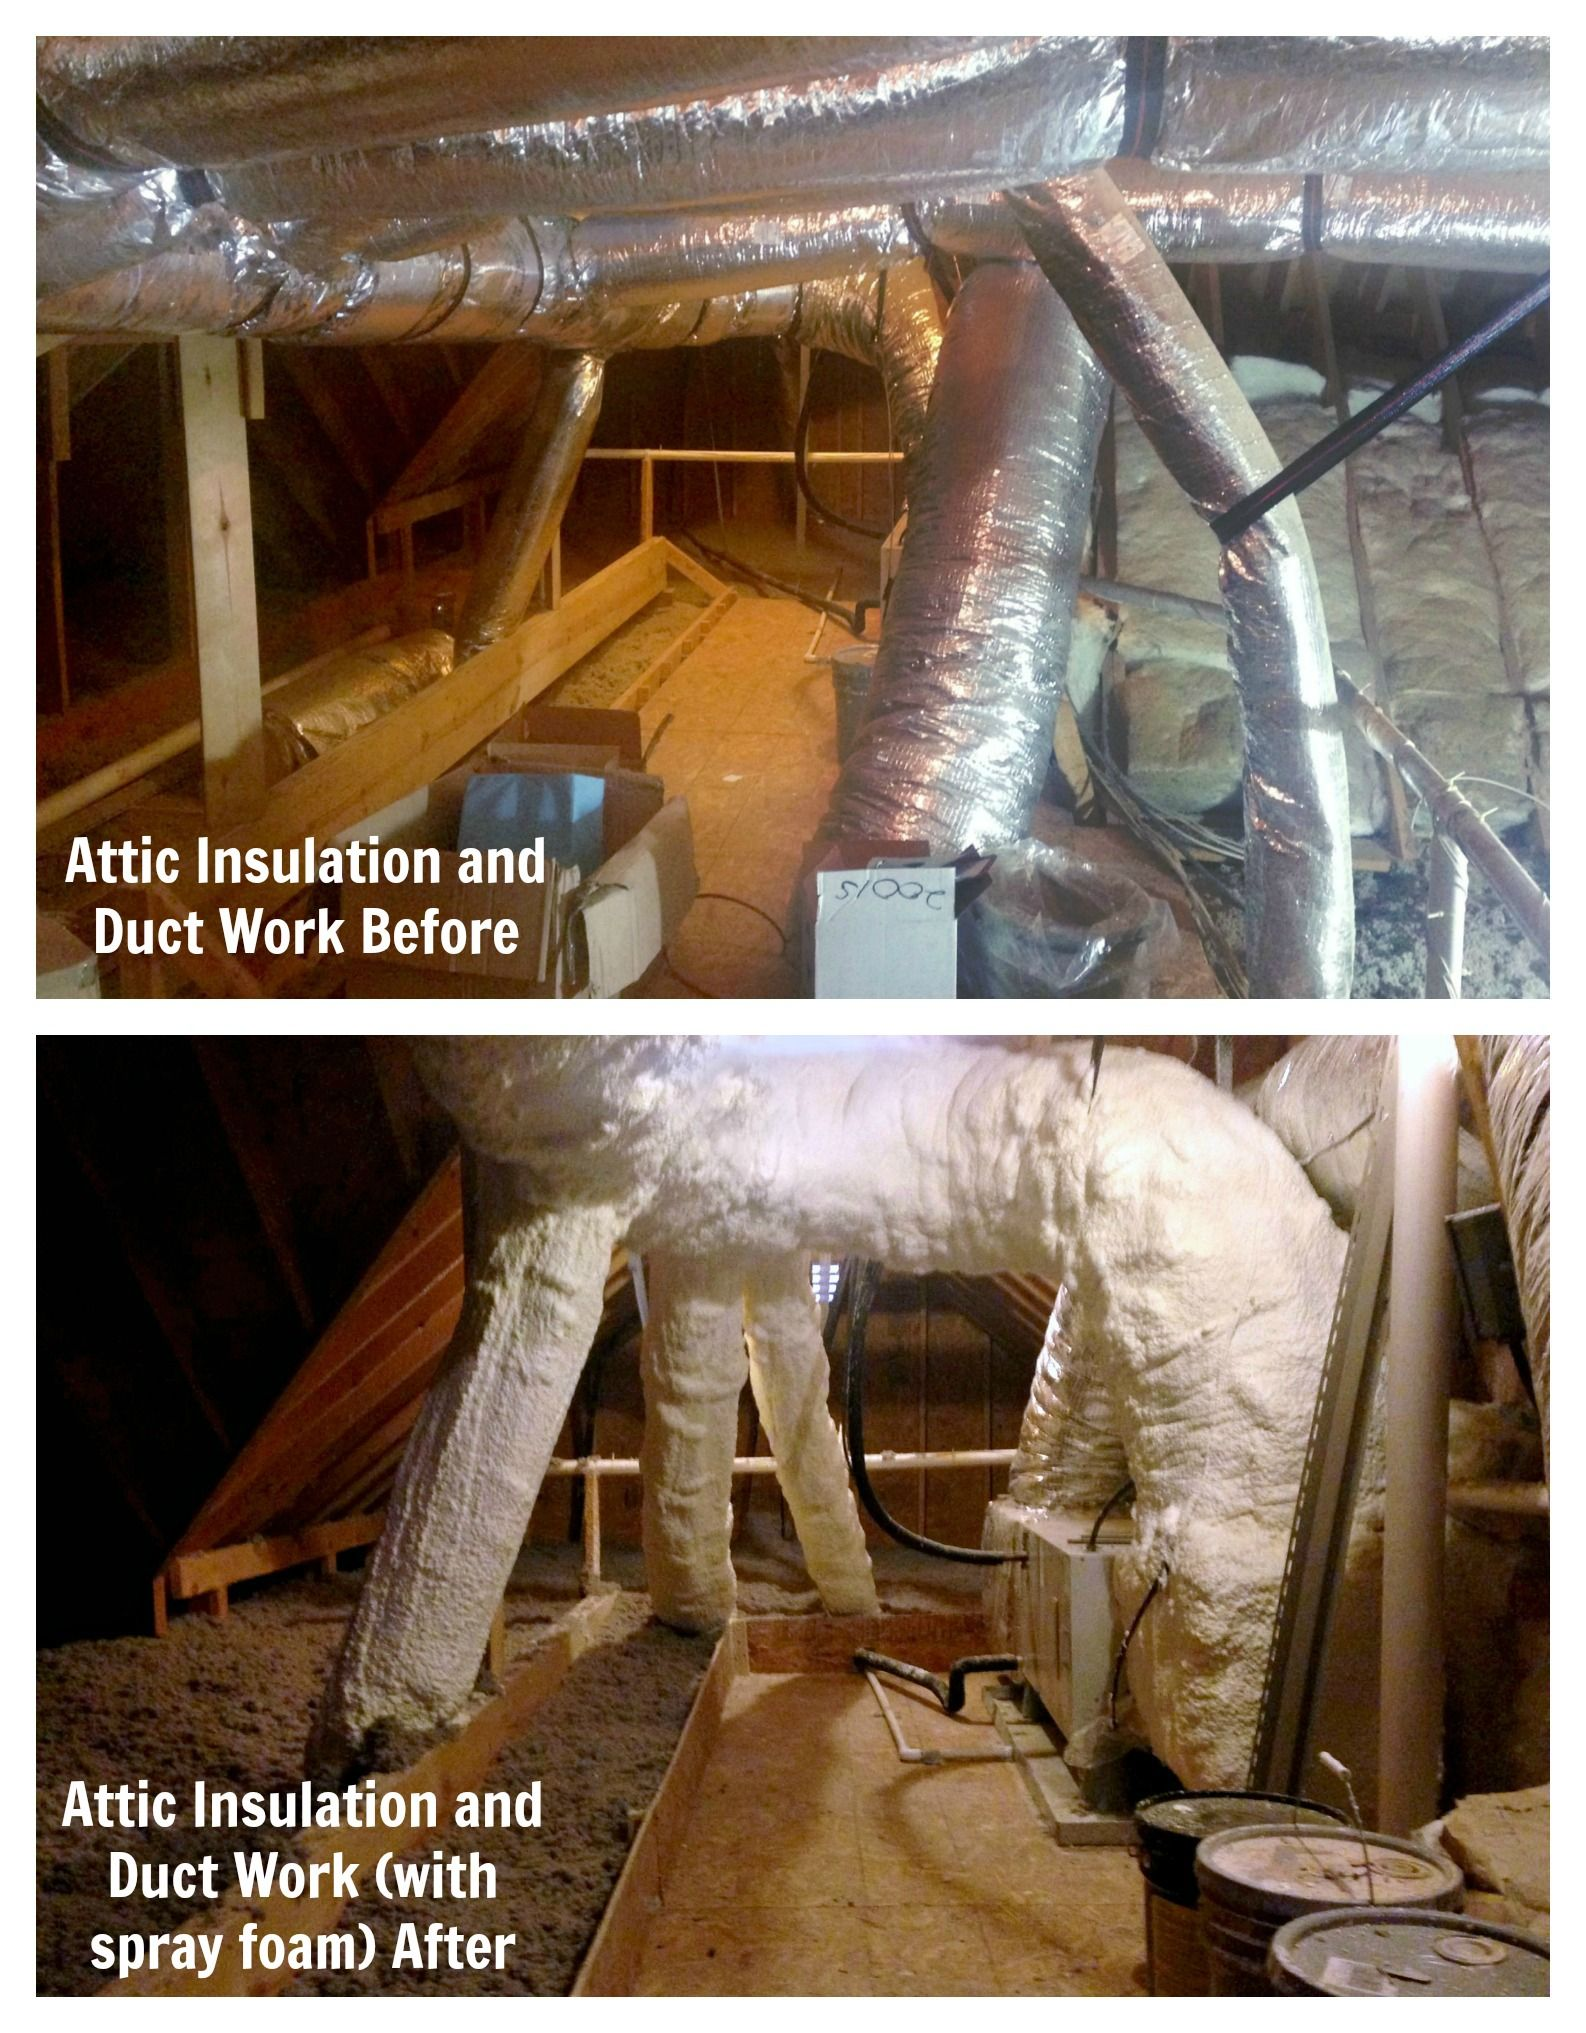 How To Transform Your Uncomfortable Attic Into A Well Insulated Air Tight Attic Masseysdes Homecomfort Comfort Attic Storage Attic Design Attic Flooring